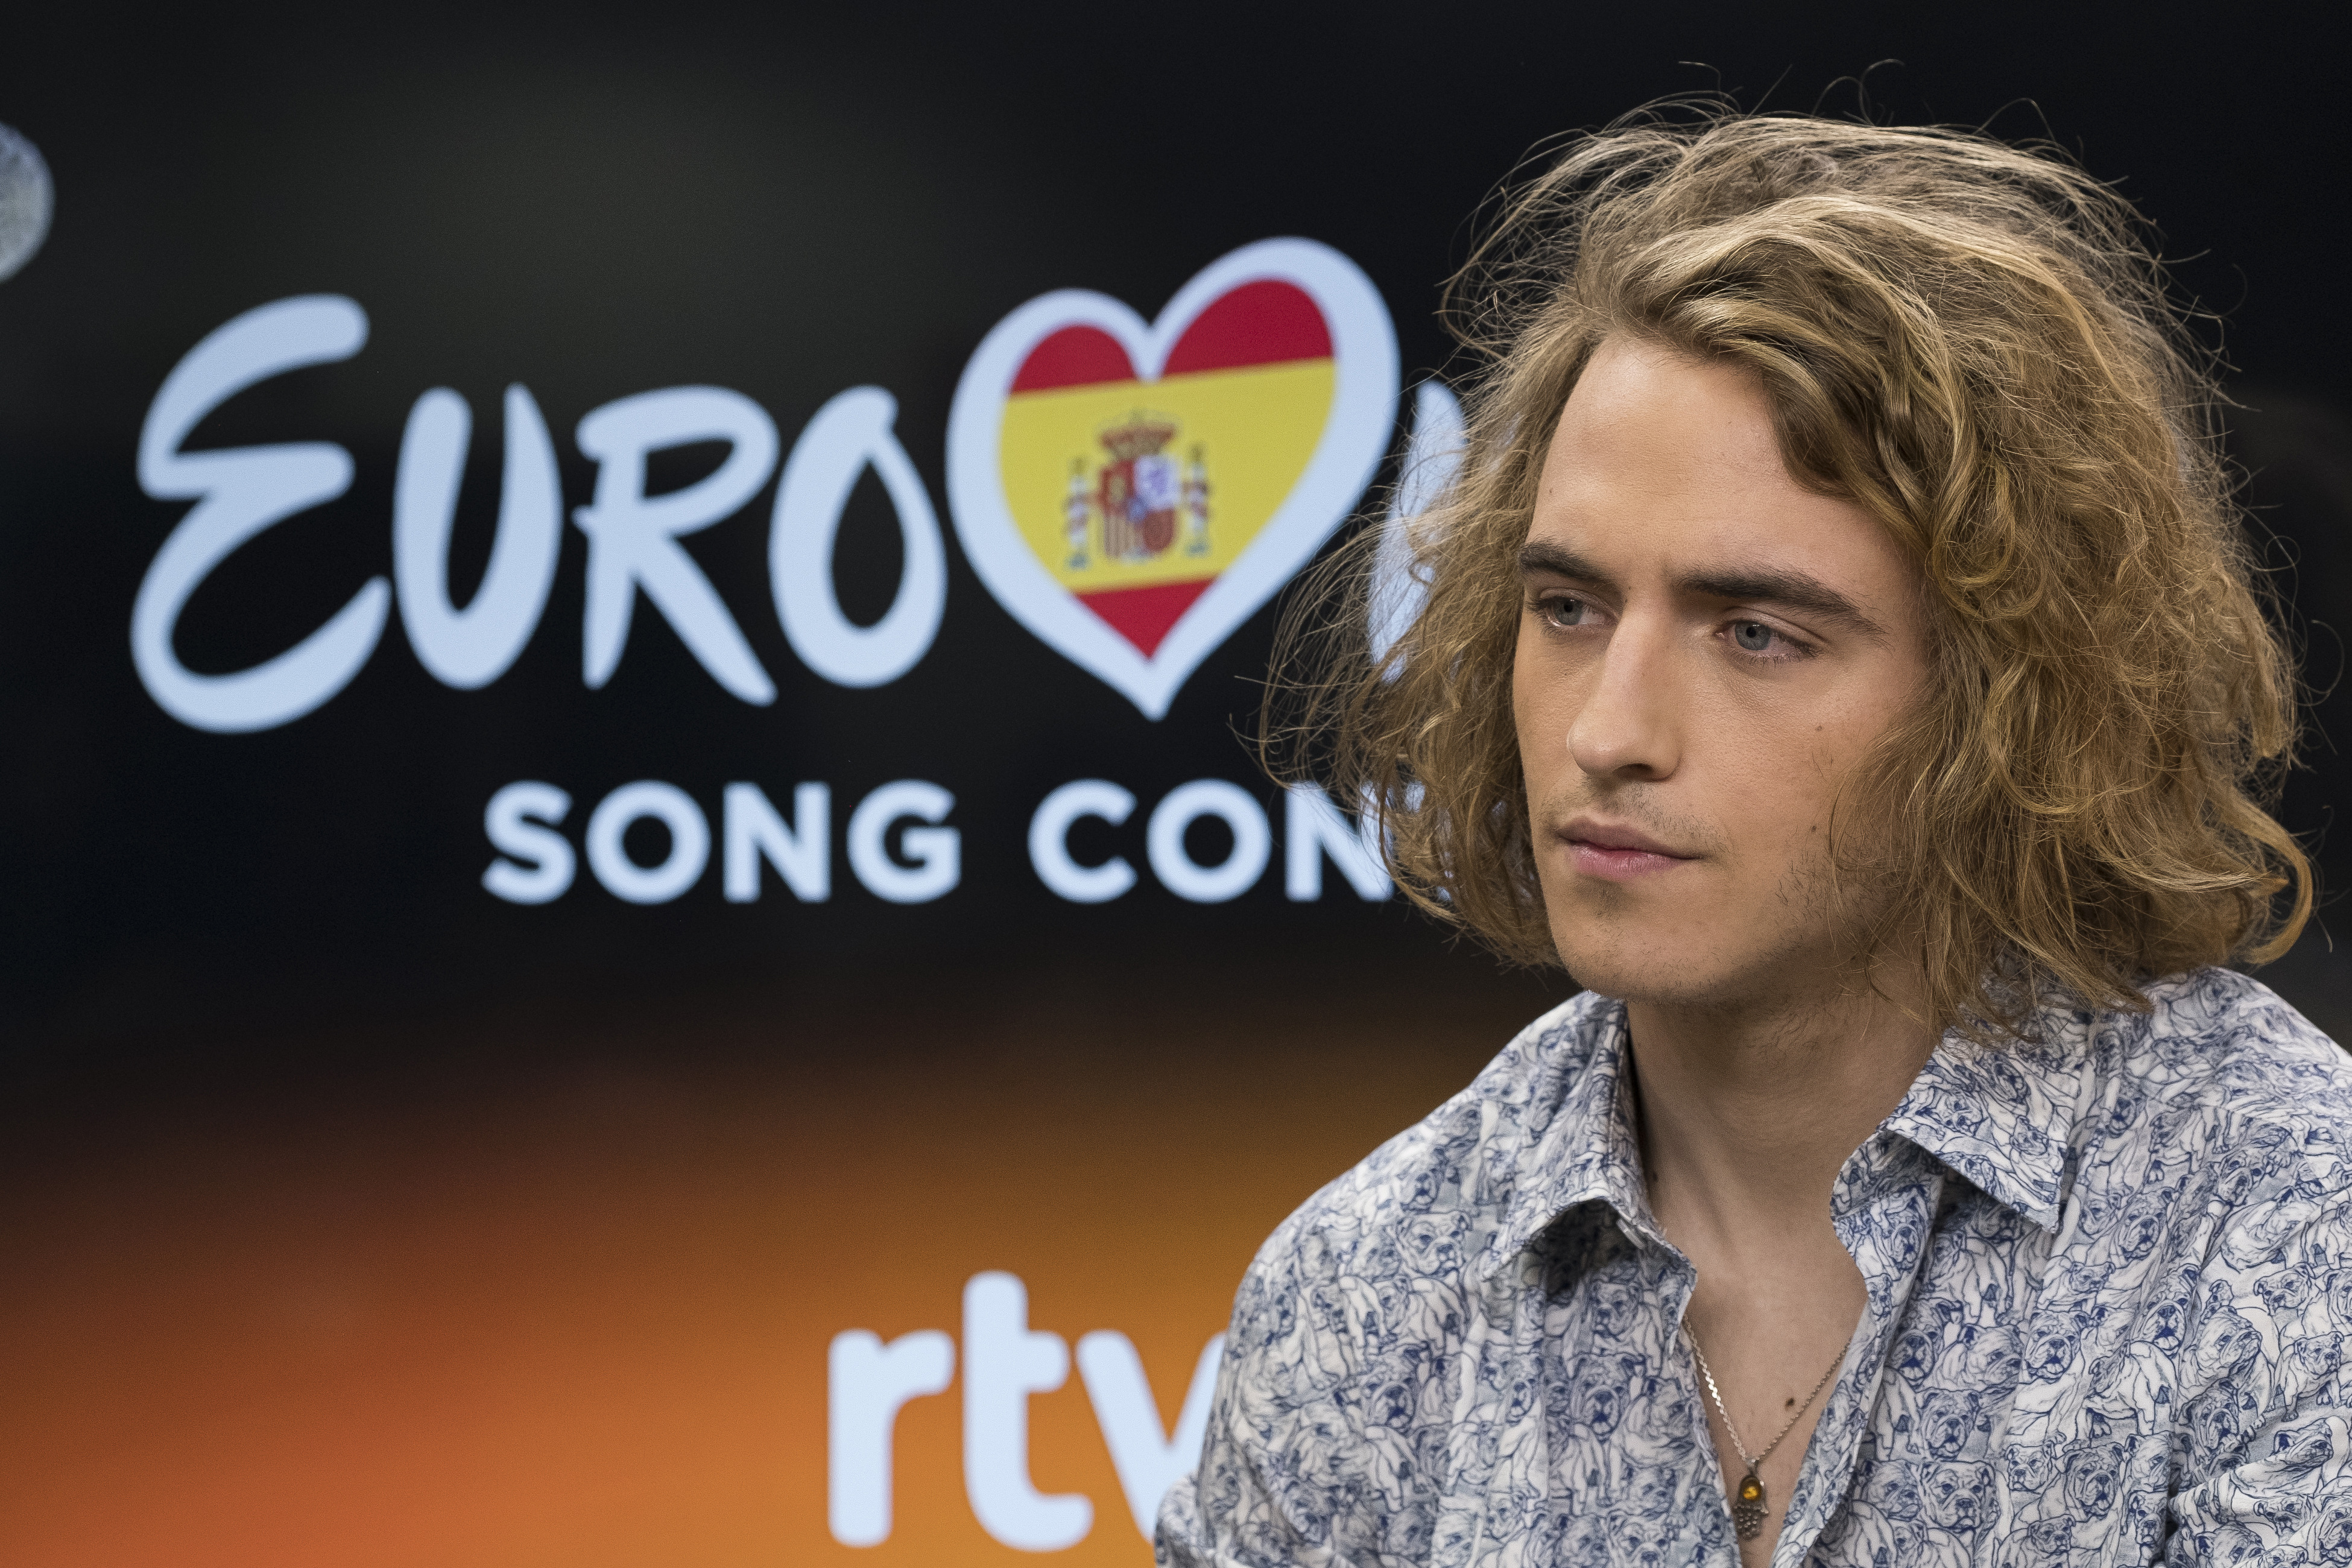 Manel Navarro's Do It For Your Lover for Spain doesn't impress Eurovision 2017 viewers